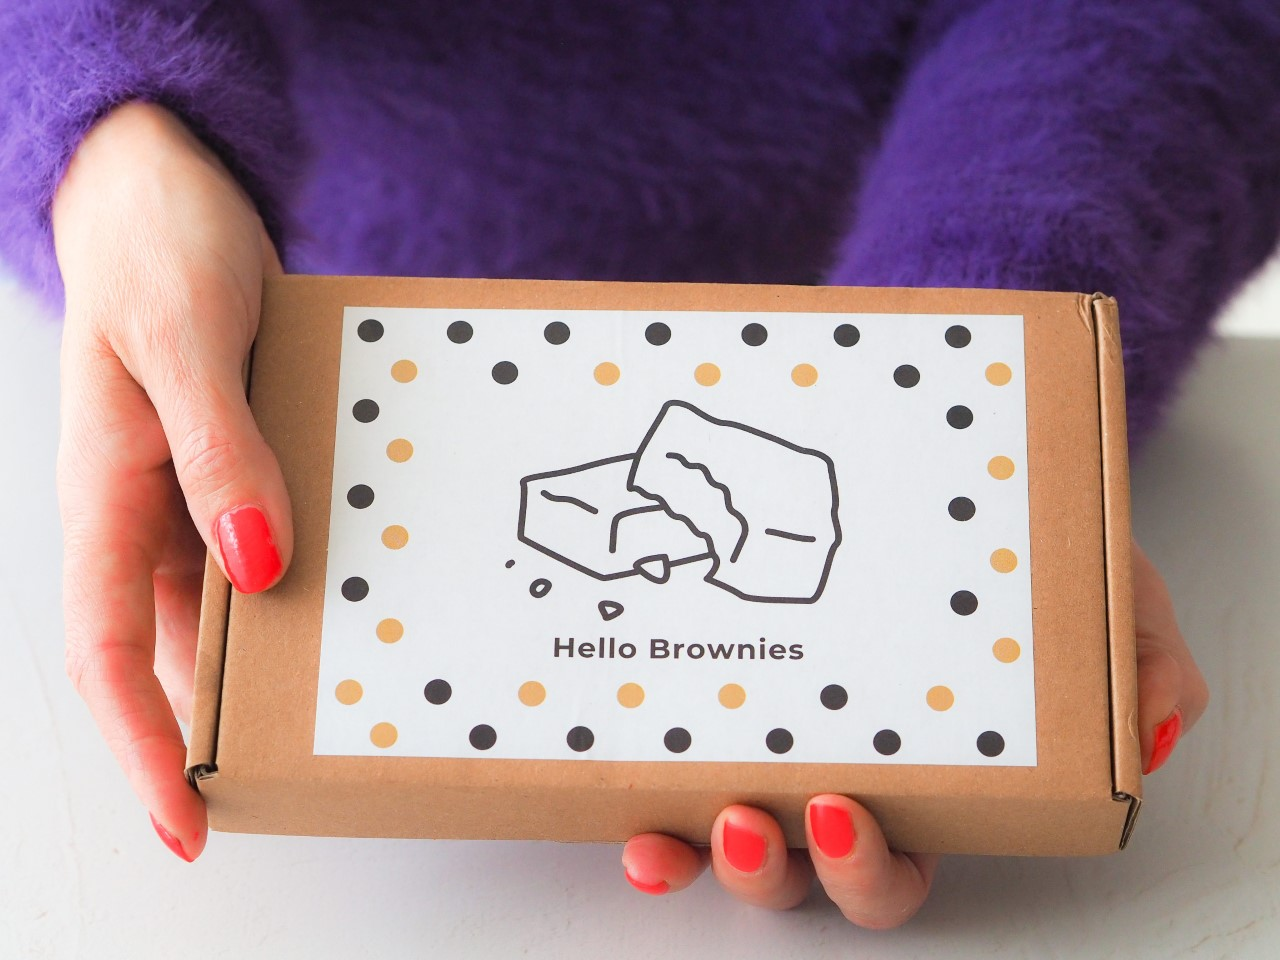 The Brownie Box by Hello Brownies